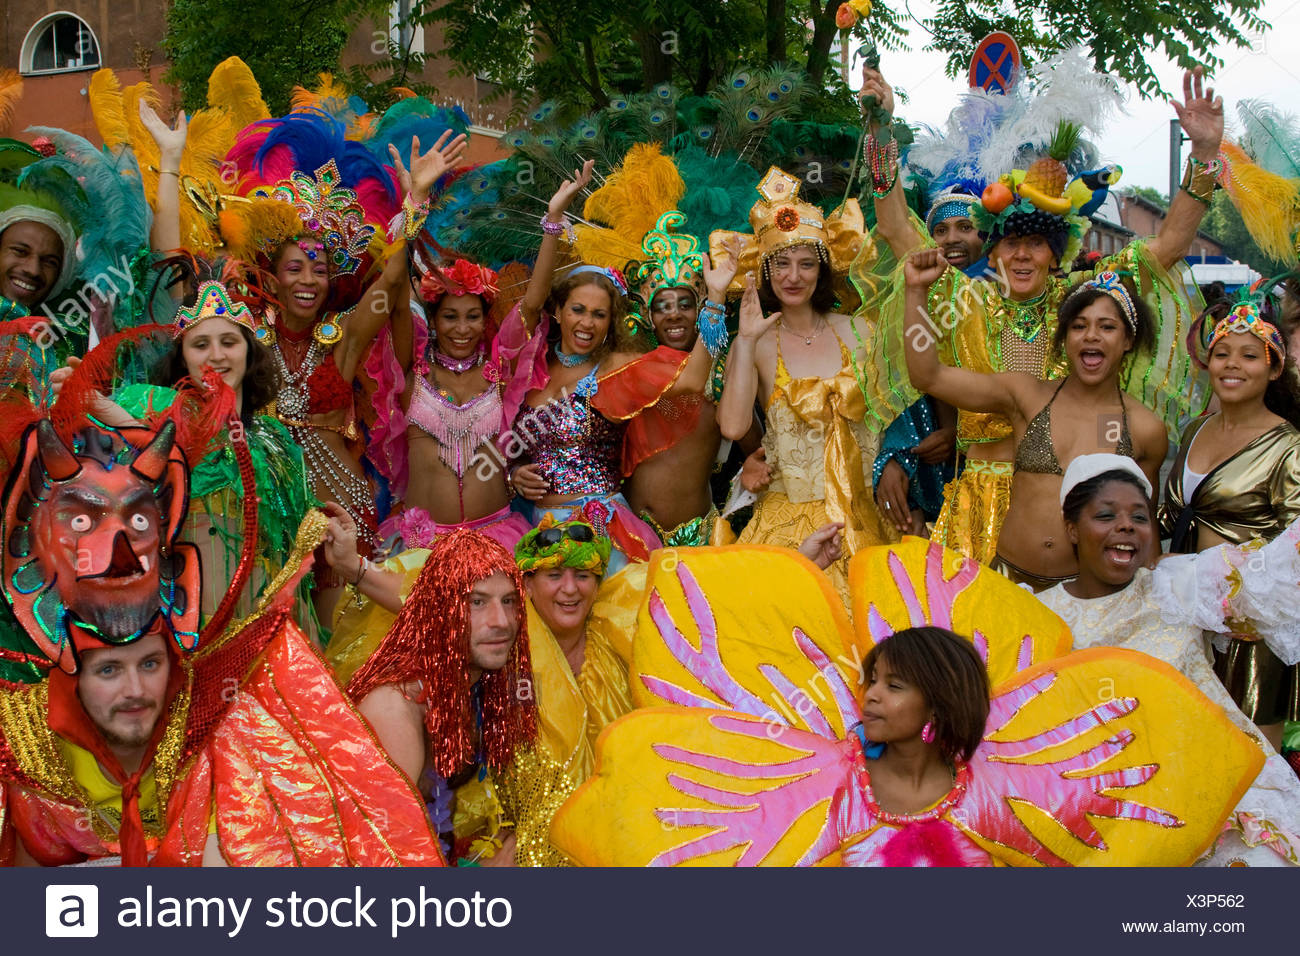 Amasonia group, Carnival of Cultures 2009, Berlin, Germany, Europe - Stock Image